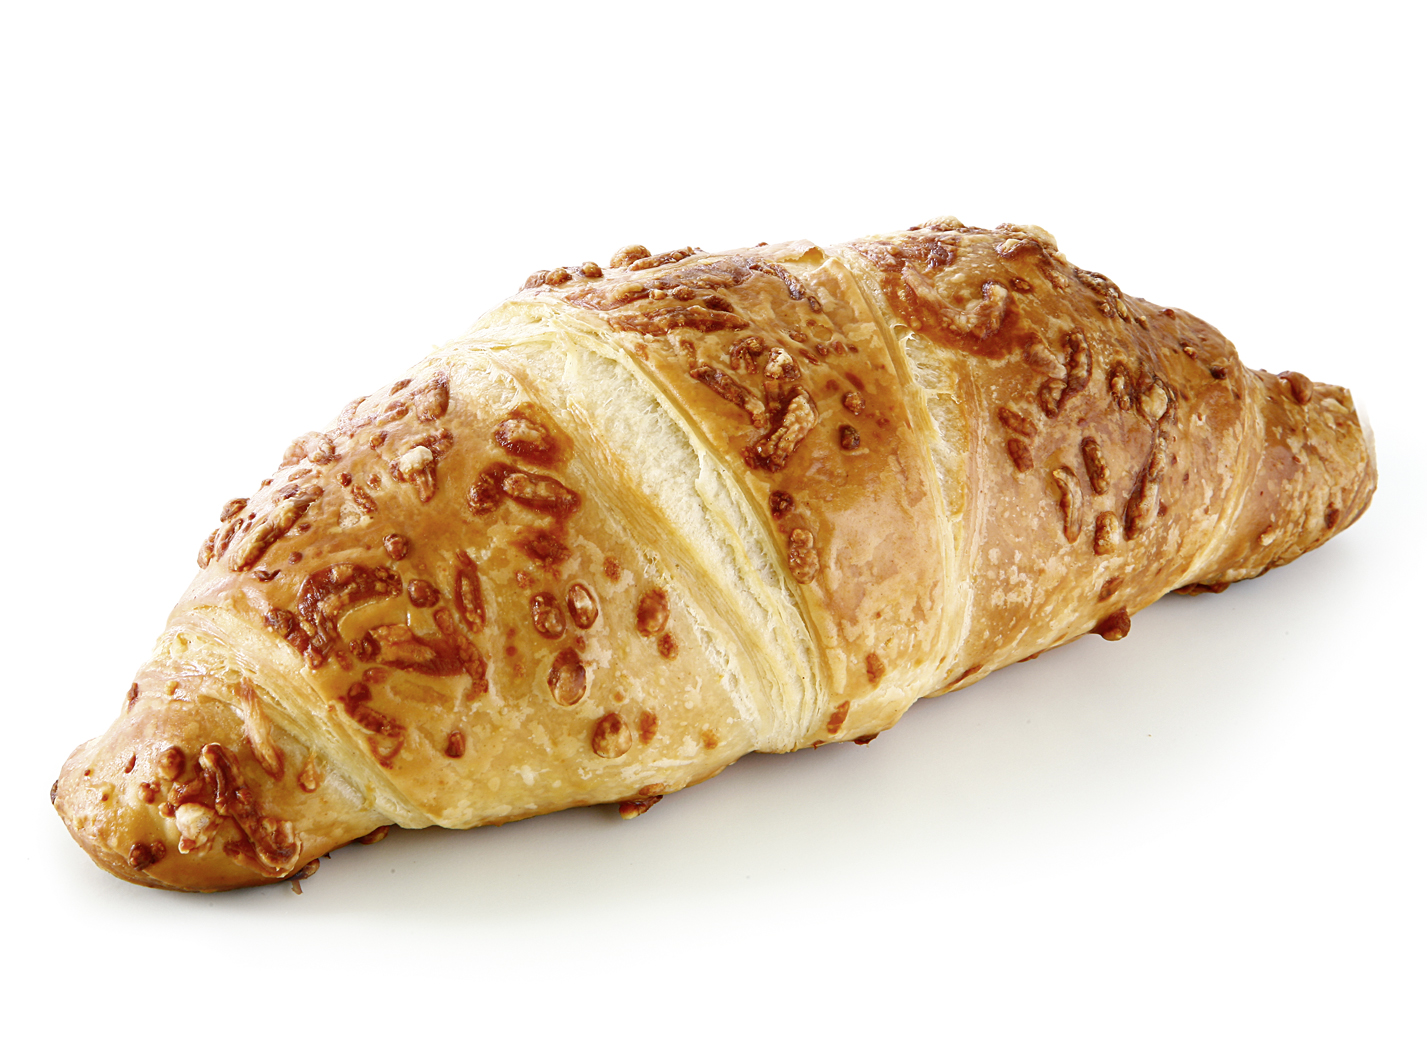 Ham-Cheese- Croissant (cubes) - Dough pastry/ butter croissant, filled with ham cubes and original Dutch Gouda cheese